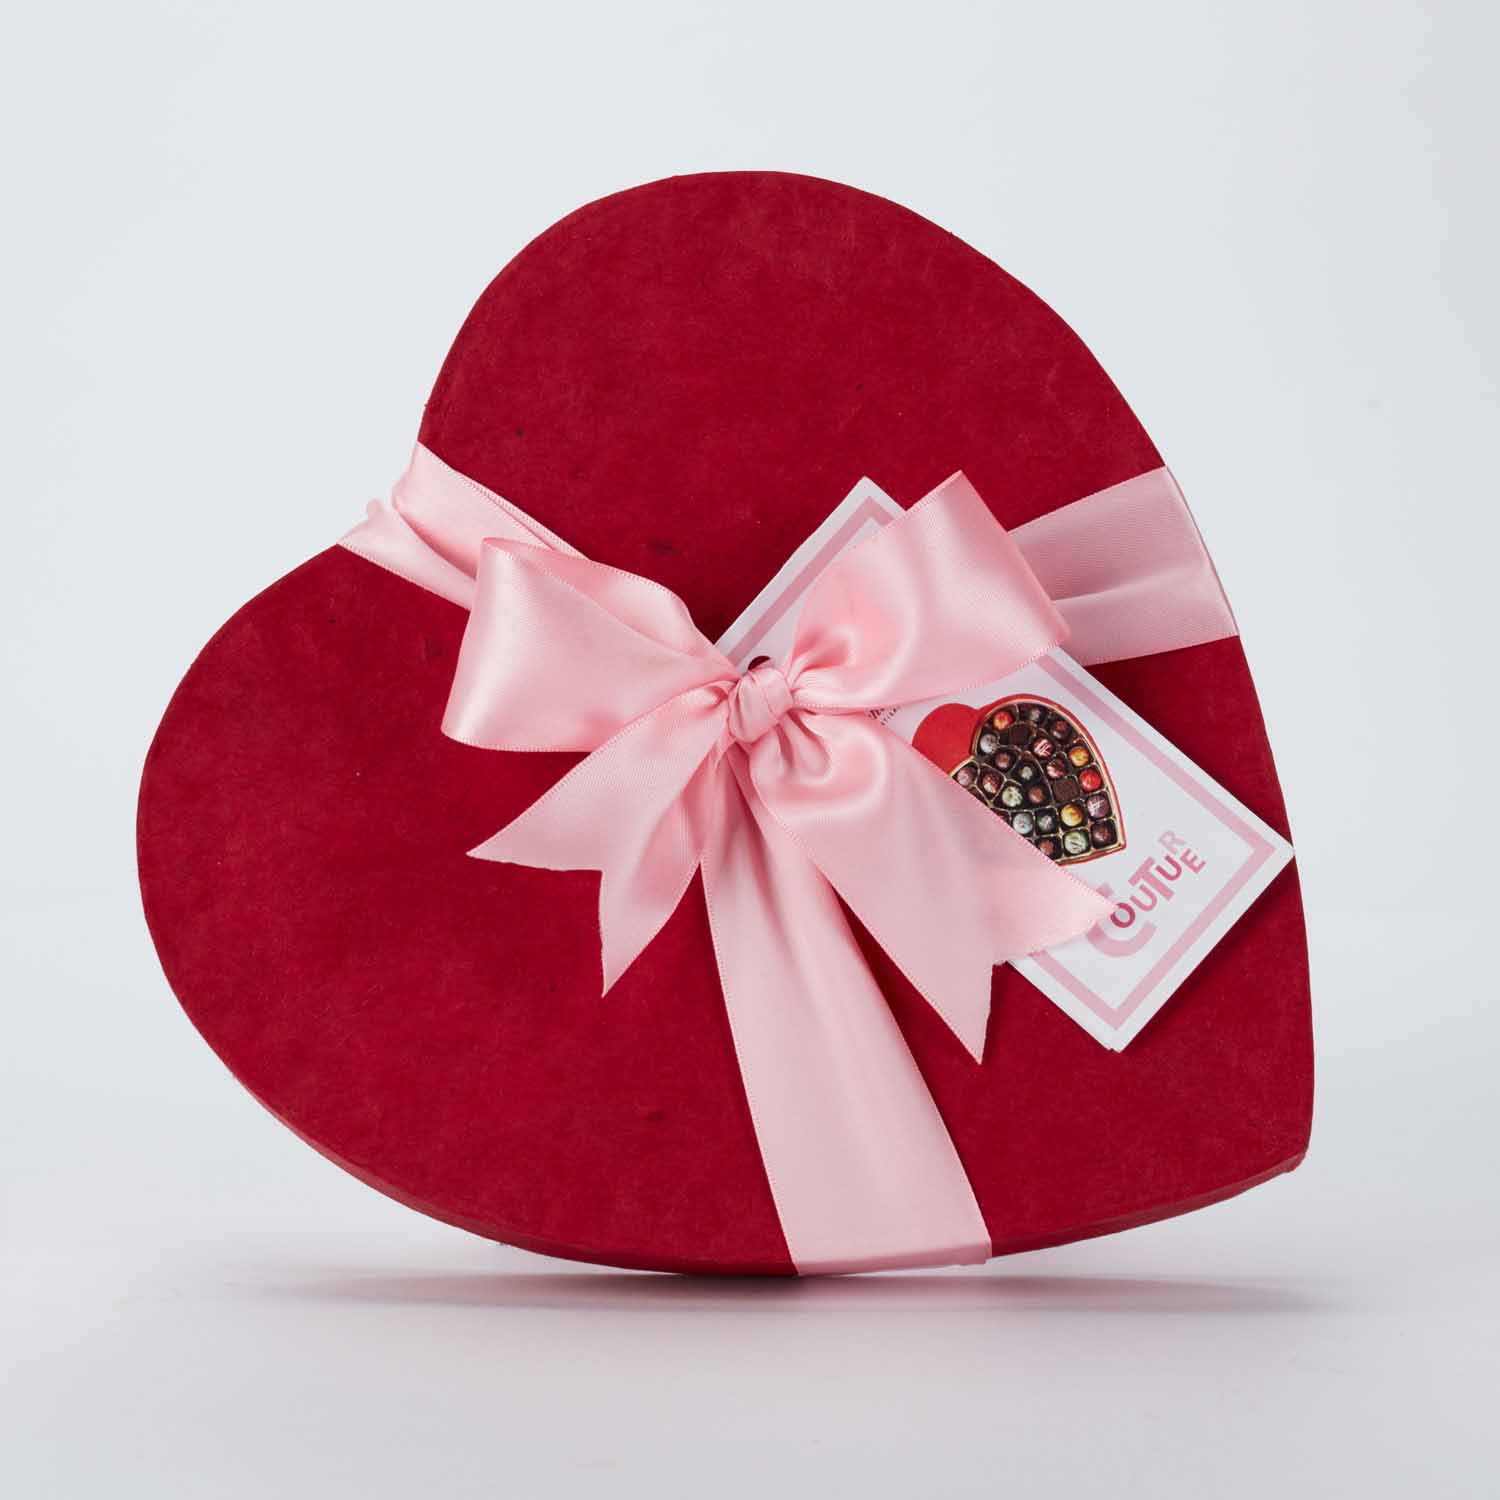 Couture Large Heart Box